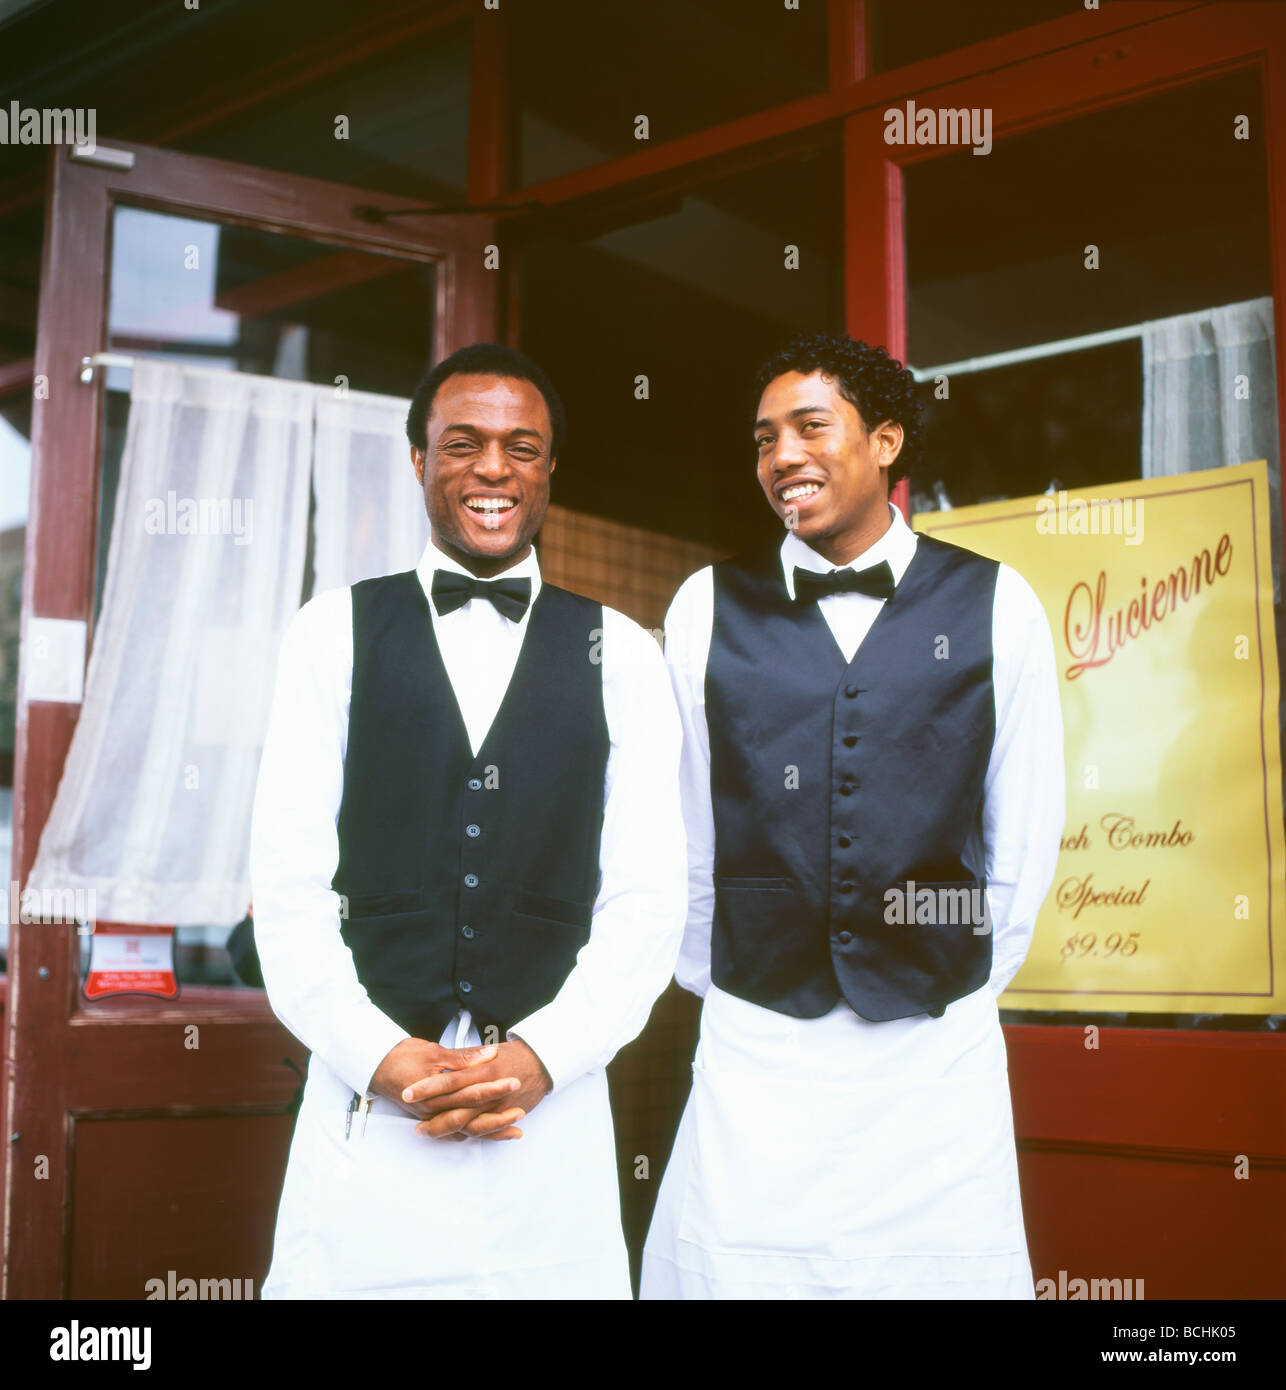 Two waiters in aprons and bow ties greeting customers outside Chez Lucienne restaurant Harlem New York City, NY - Stock Image